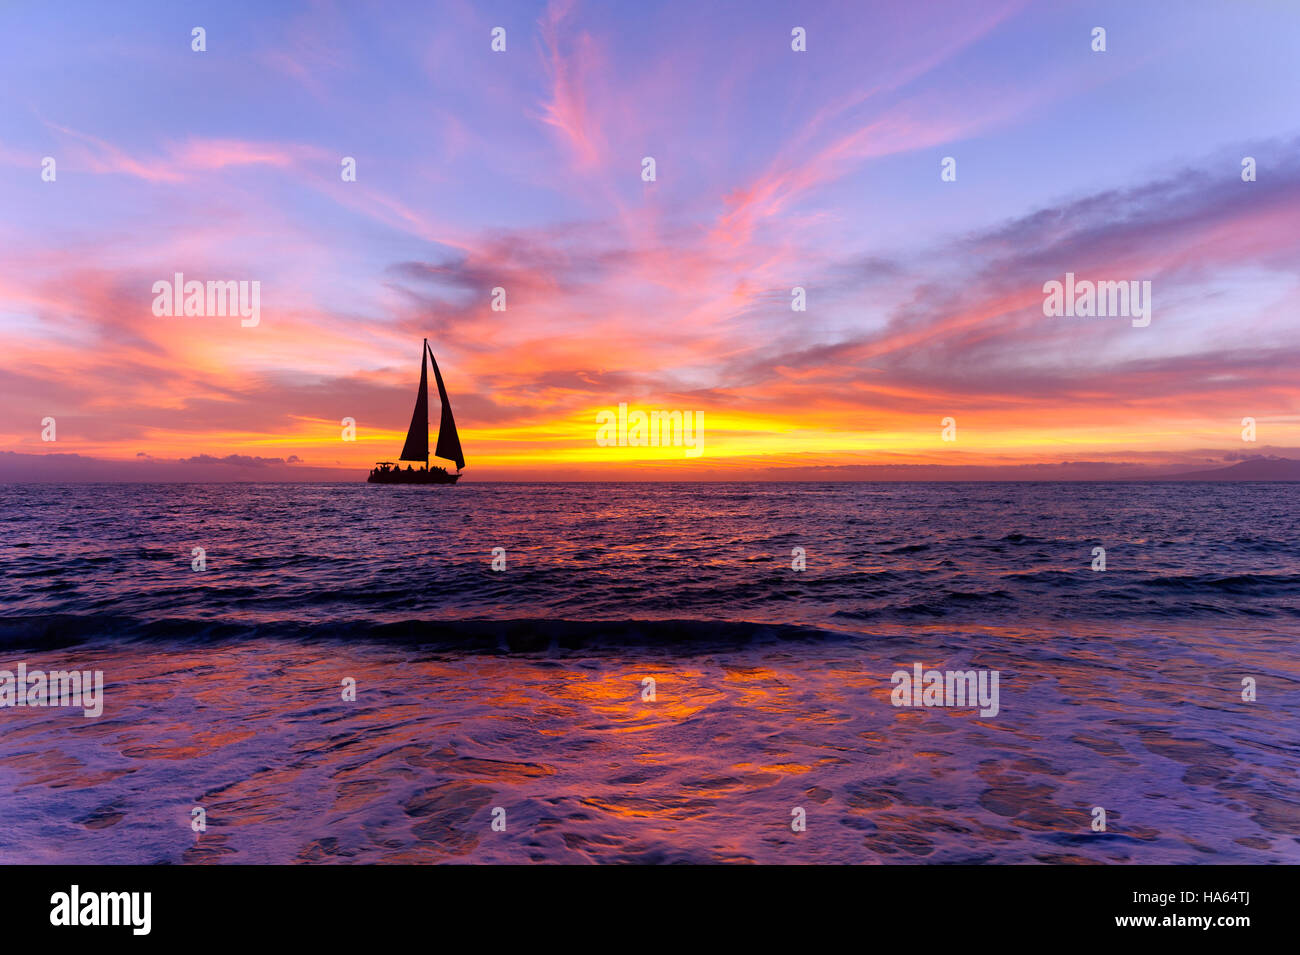 Ocean sunset sailboat silhouette is sailboat sailing along the ocean water with a colorful vivid sunset sky. - Stock Image